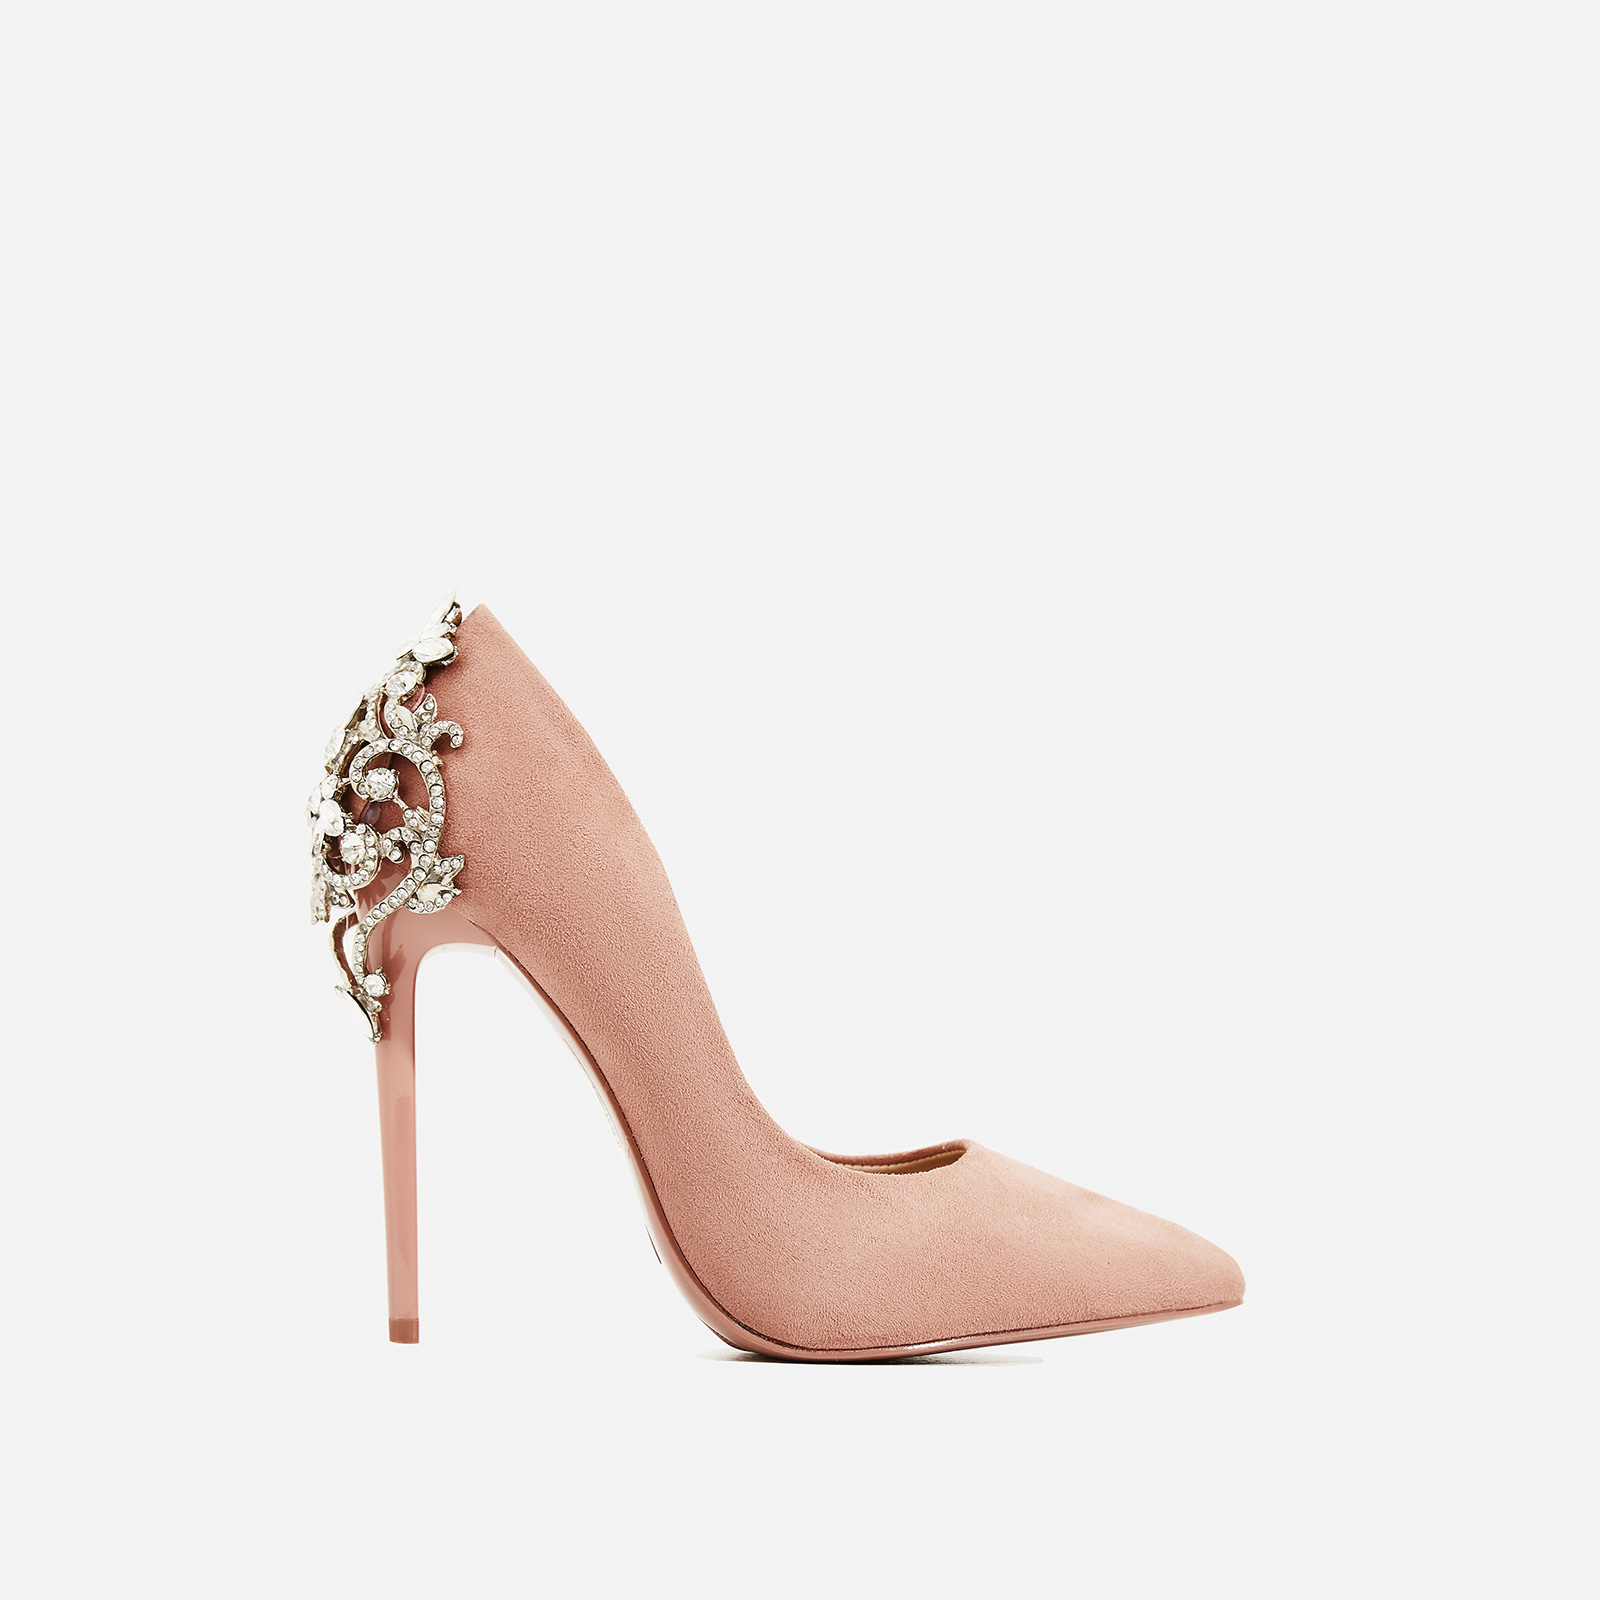 Aries Jewel Embellished Court Heel In Blush Pink Faux Suede